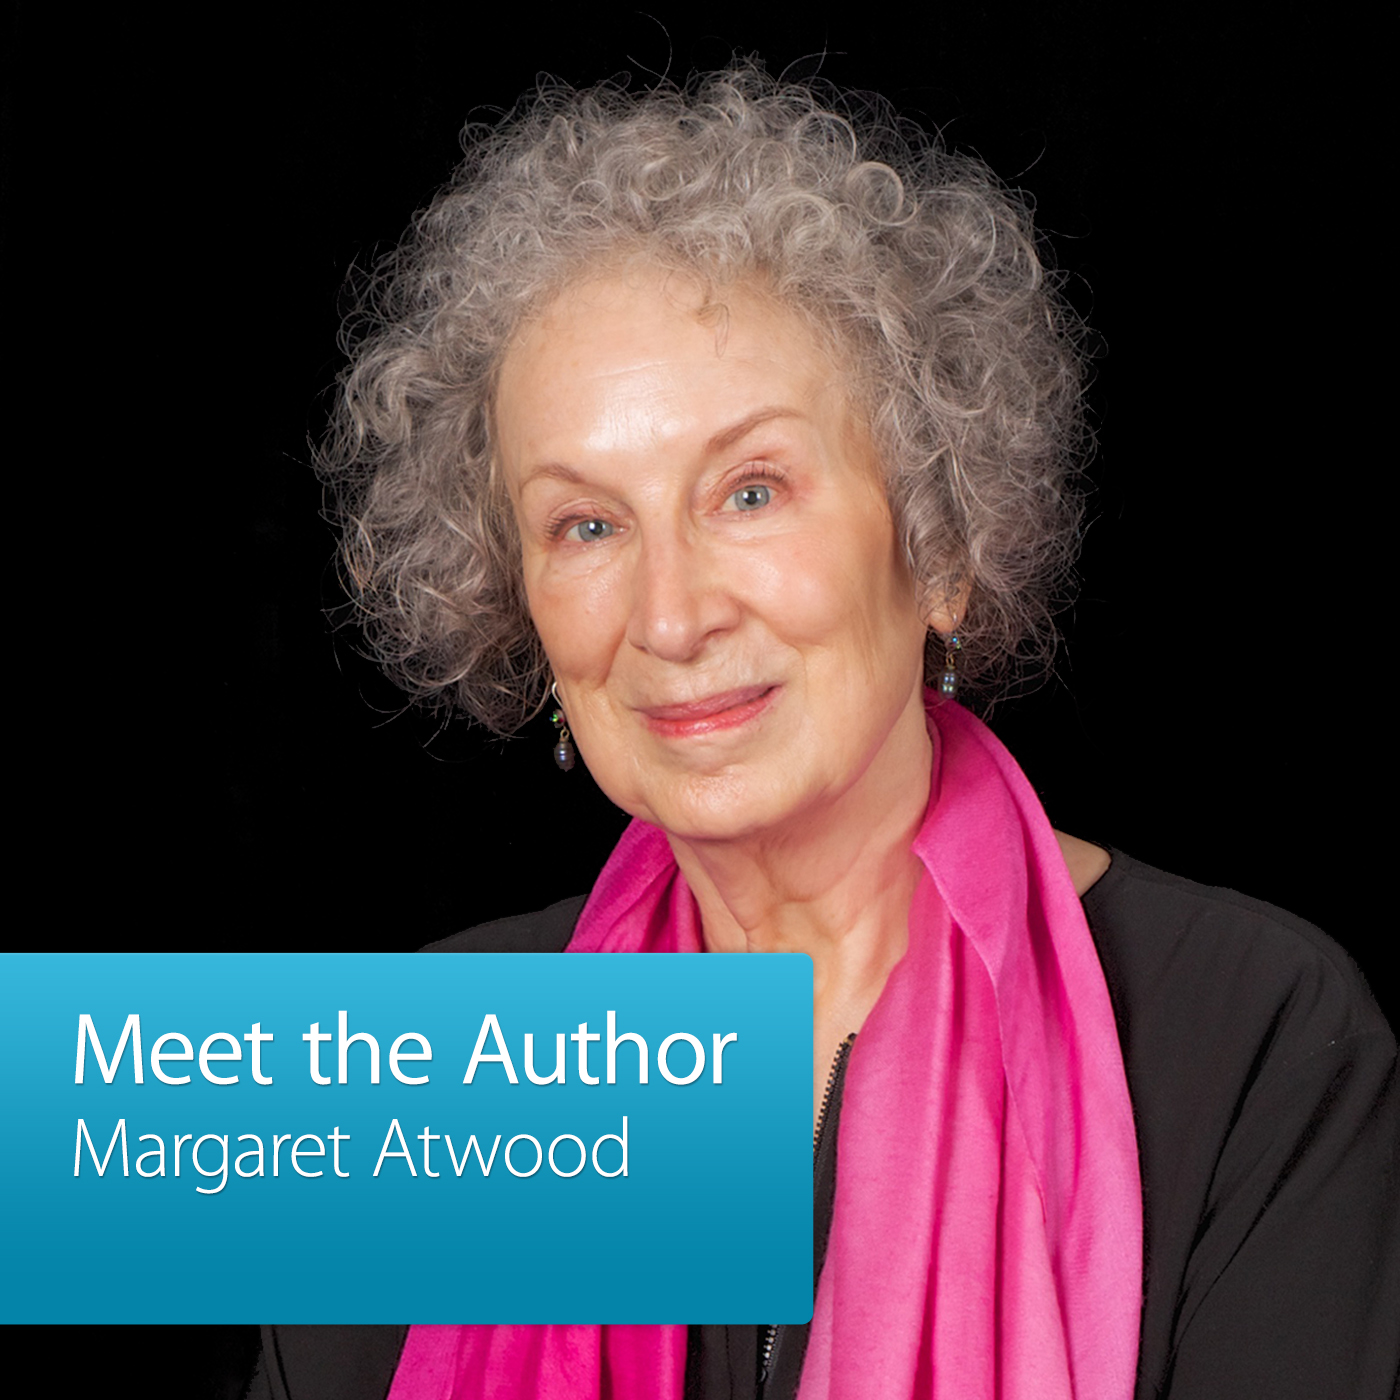 Margaret Atwood: Meet the Author